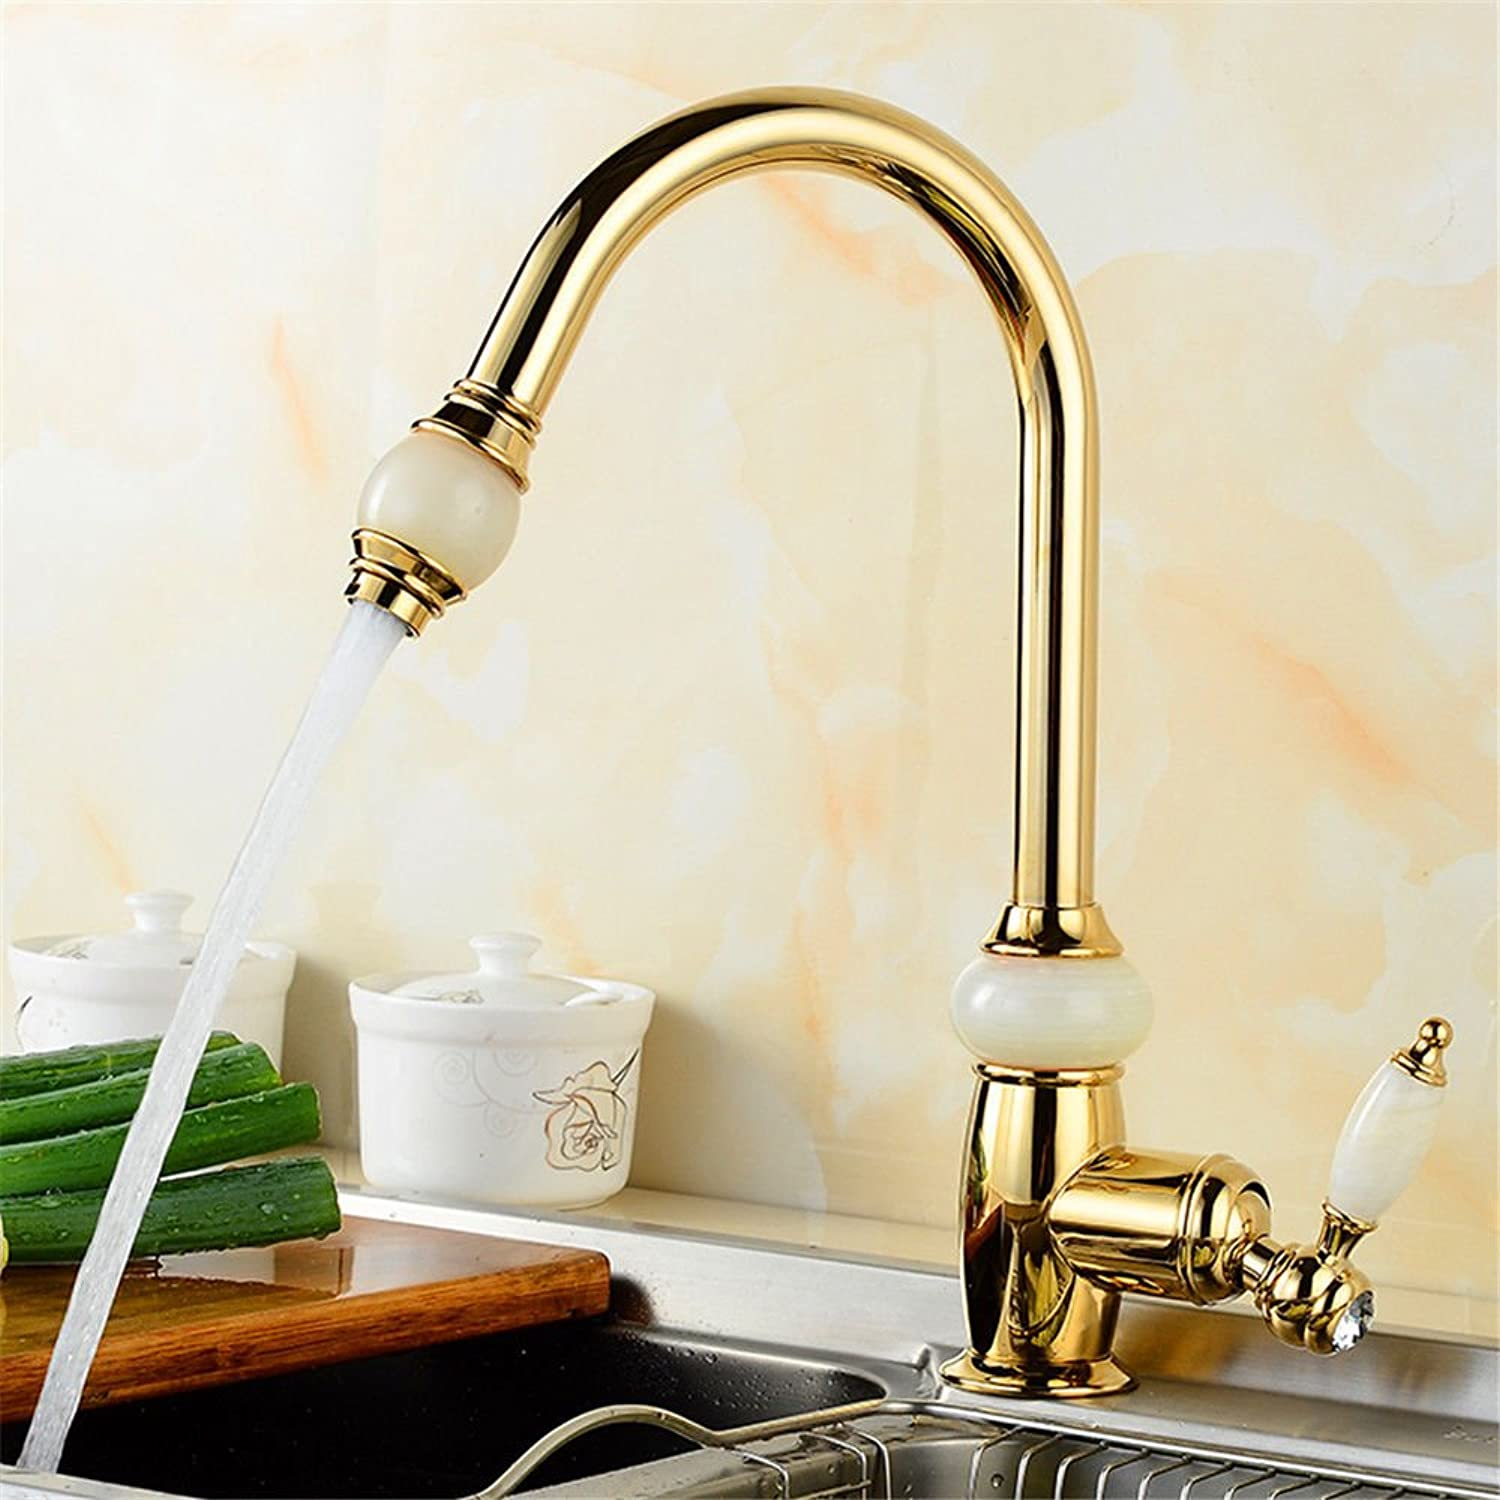 Pengei Tap Basin Mixer Kitchen Sink Mixer Faucet All Copper Pull Type gold Single Hole